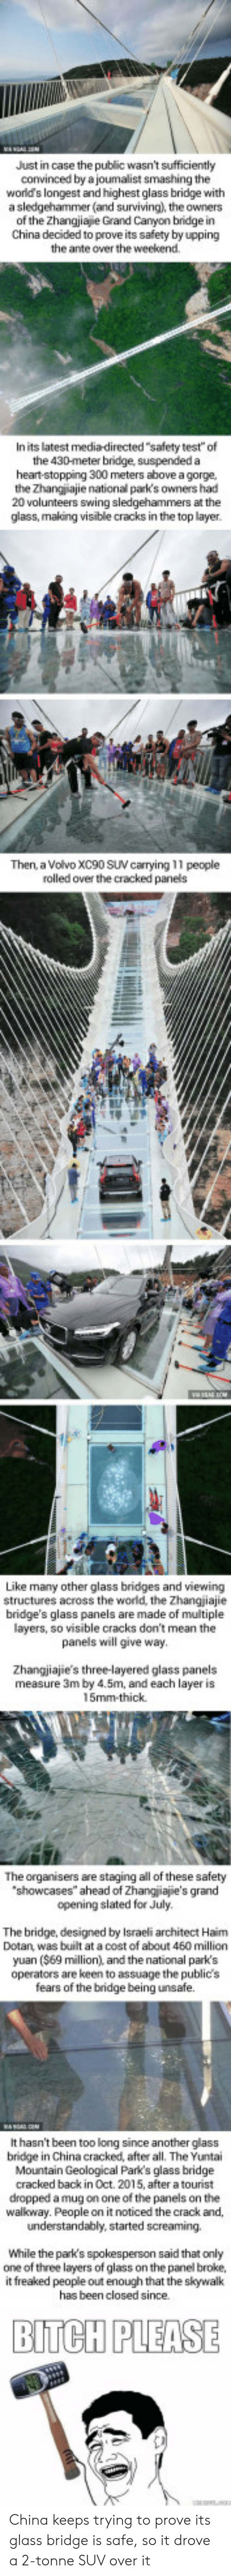 "At A Cost: Just in case the public wasn't sufficiently  convinced by a joumalist smashing the  world's longest and highest glass bridge with  a sledgehammer(and surviving), the owners  of the Zhangjiajie Grand Canyon bridge in  China decided to prove its safety by upping  the ante over the weekend.  In its latest media-directed ""safety test"" of  the 430-meter bridge, suspended a  heart-stopping 300 meters above a gorge,  the Zhangj ajie national park's owners had  20 volunteers swing sledgehammers at th  glass, making visible cracks in the top layer  Then, a Volvo XC90 SUV carrying 11 people  rolled over the cracked panels  Like many other glass bridges and viewing  structures across the world, the Zhangjiajie  bridge's glass panels are made of multiple  layers, so visible cracks don't mean the  panels will give way  Zhangjiajie's three-layered glass panels  measure 3m by 4.5m, and each layer is  5mm-thick.  The organisers are staging all of these safety  showcases"" ahead of Zhangjiajie's grand  opening slated for July  The bridge, designed by Israeli architect Haim  Dotan, was built at a cost of about 460 million  yuan ($69 million), and the national park's  operators are keen to assuage the publics  fears of the bridge being unsafe.  It hasn't been too long since another glass  bridge in China cracked, after all. The Yuntai  Mountain Geological Park's glass bridge  cracked back in Oct. 2015, after a tourist  dropped a mug on one of the panels on the  walkoway. People on it noticed the crack and,  While the park's spokesperson said that only  one of three layers of glass on the panel broke,  it freaked people out enough that the skywalk  has been closed since.  BITCH PLEASE China keeps trying to prove its glass bridge is safe, so it drove a 2-tonne SUV over it"